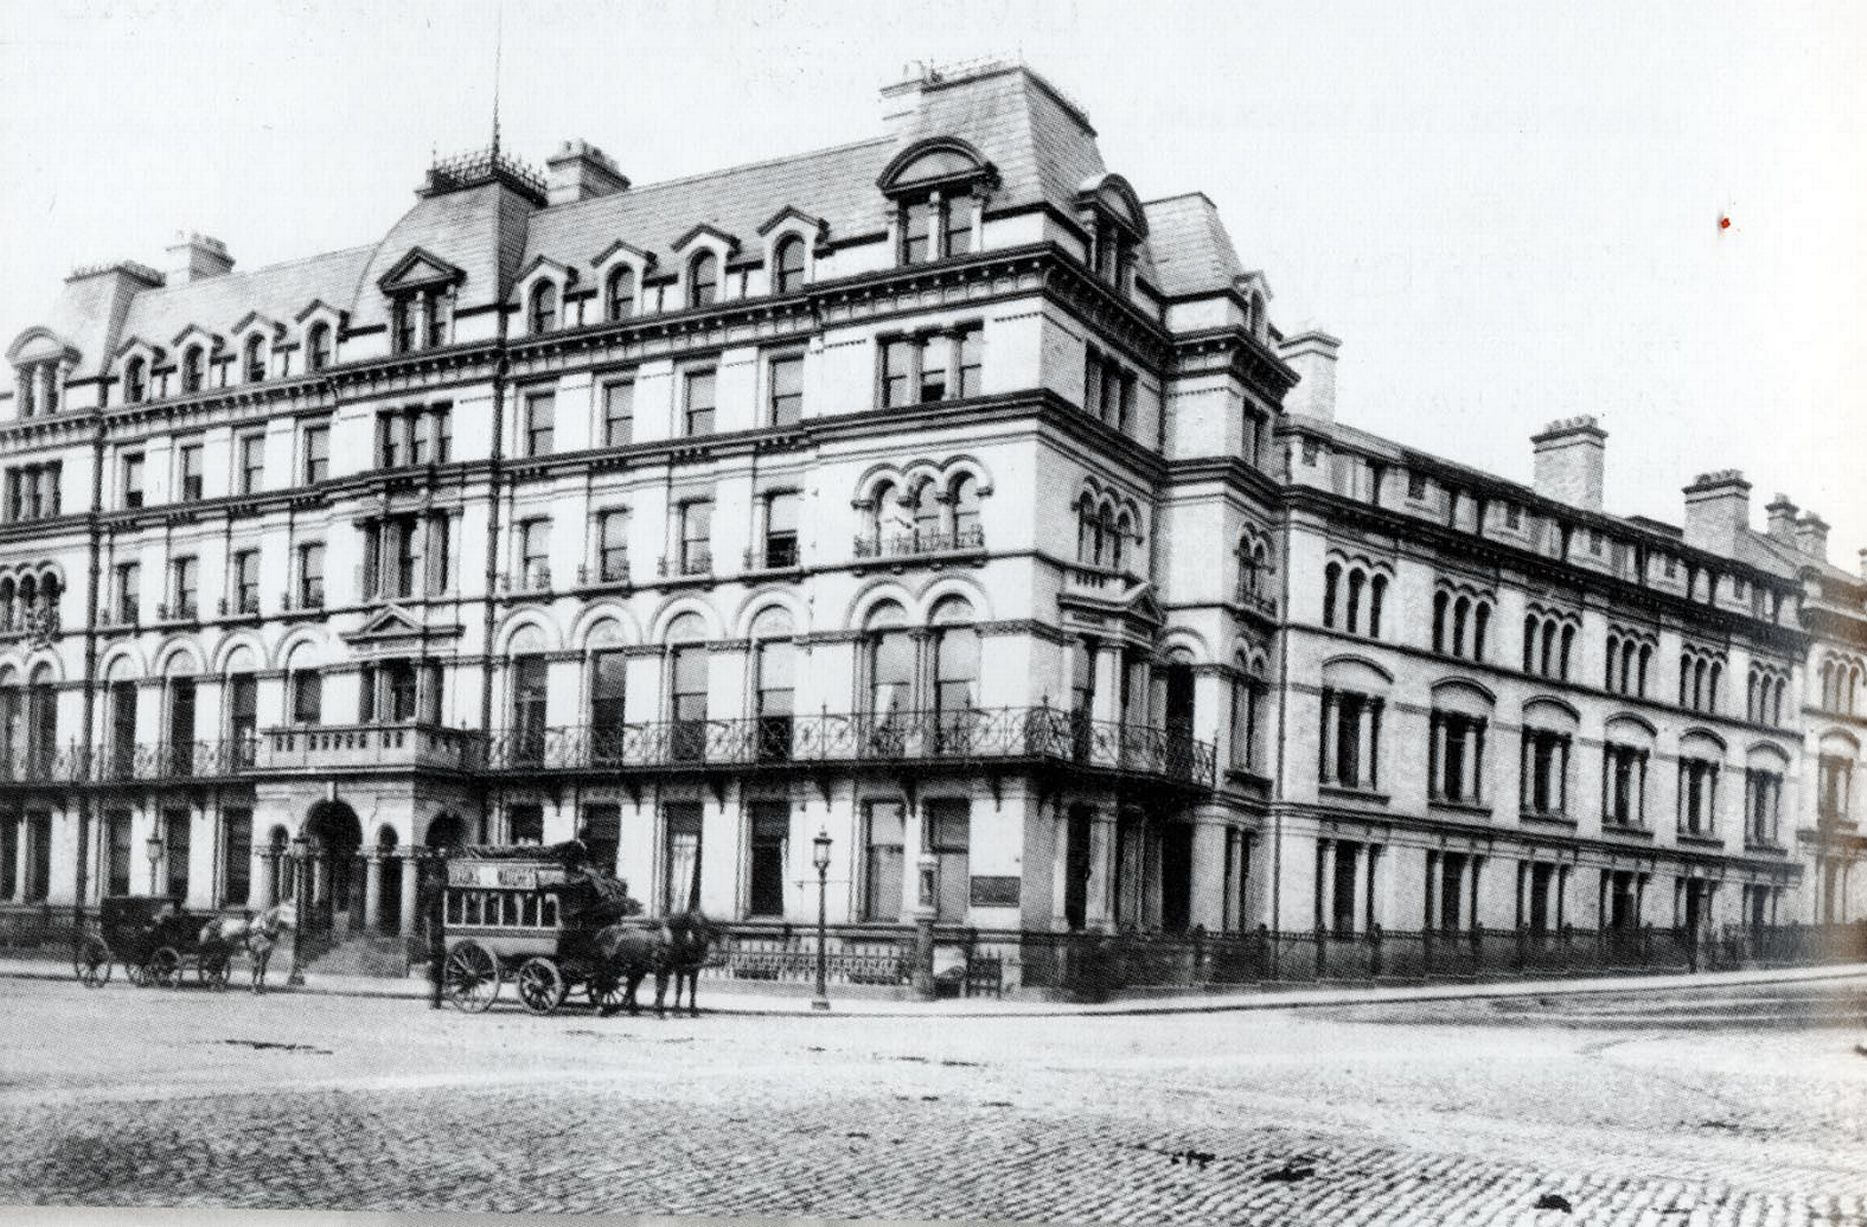 The Adelphi Hotel in 1870. This shows the original hotel that stood on the site, which was built in 1826 for the hotelier, James Radley.